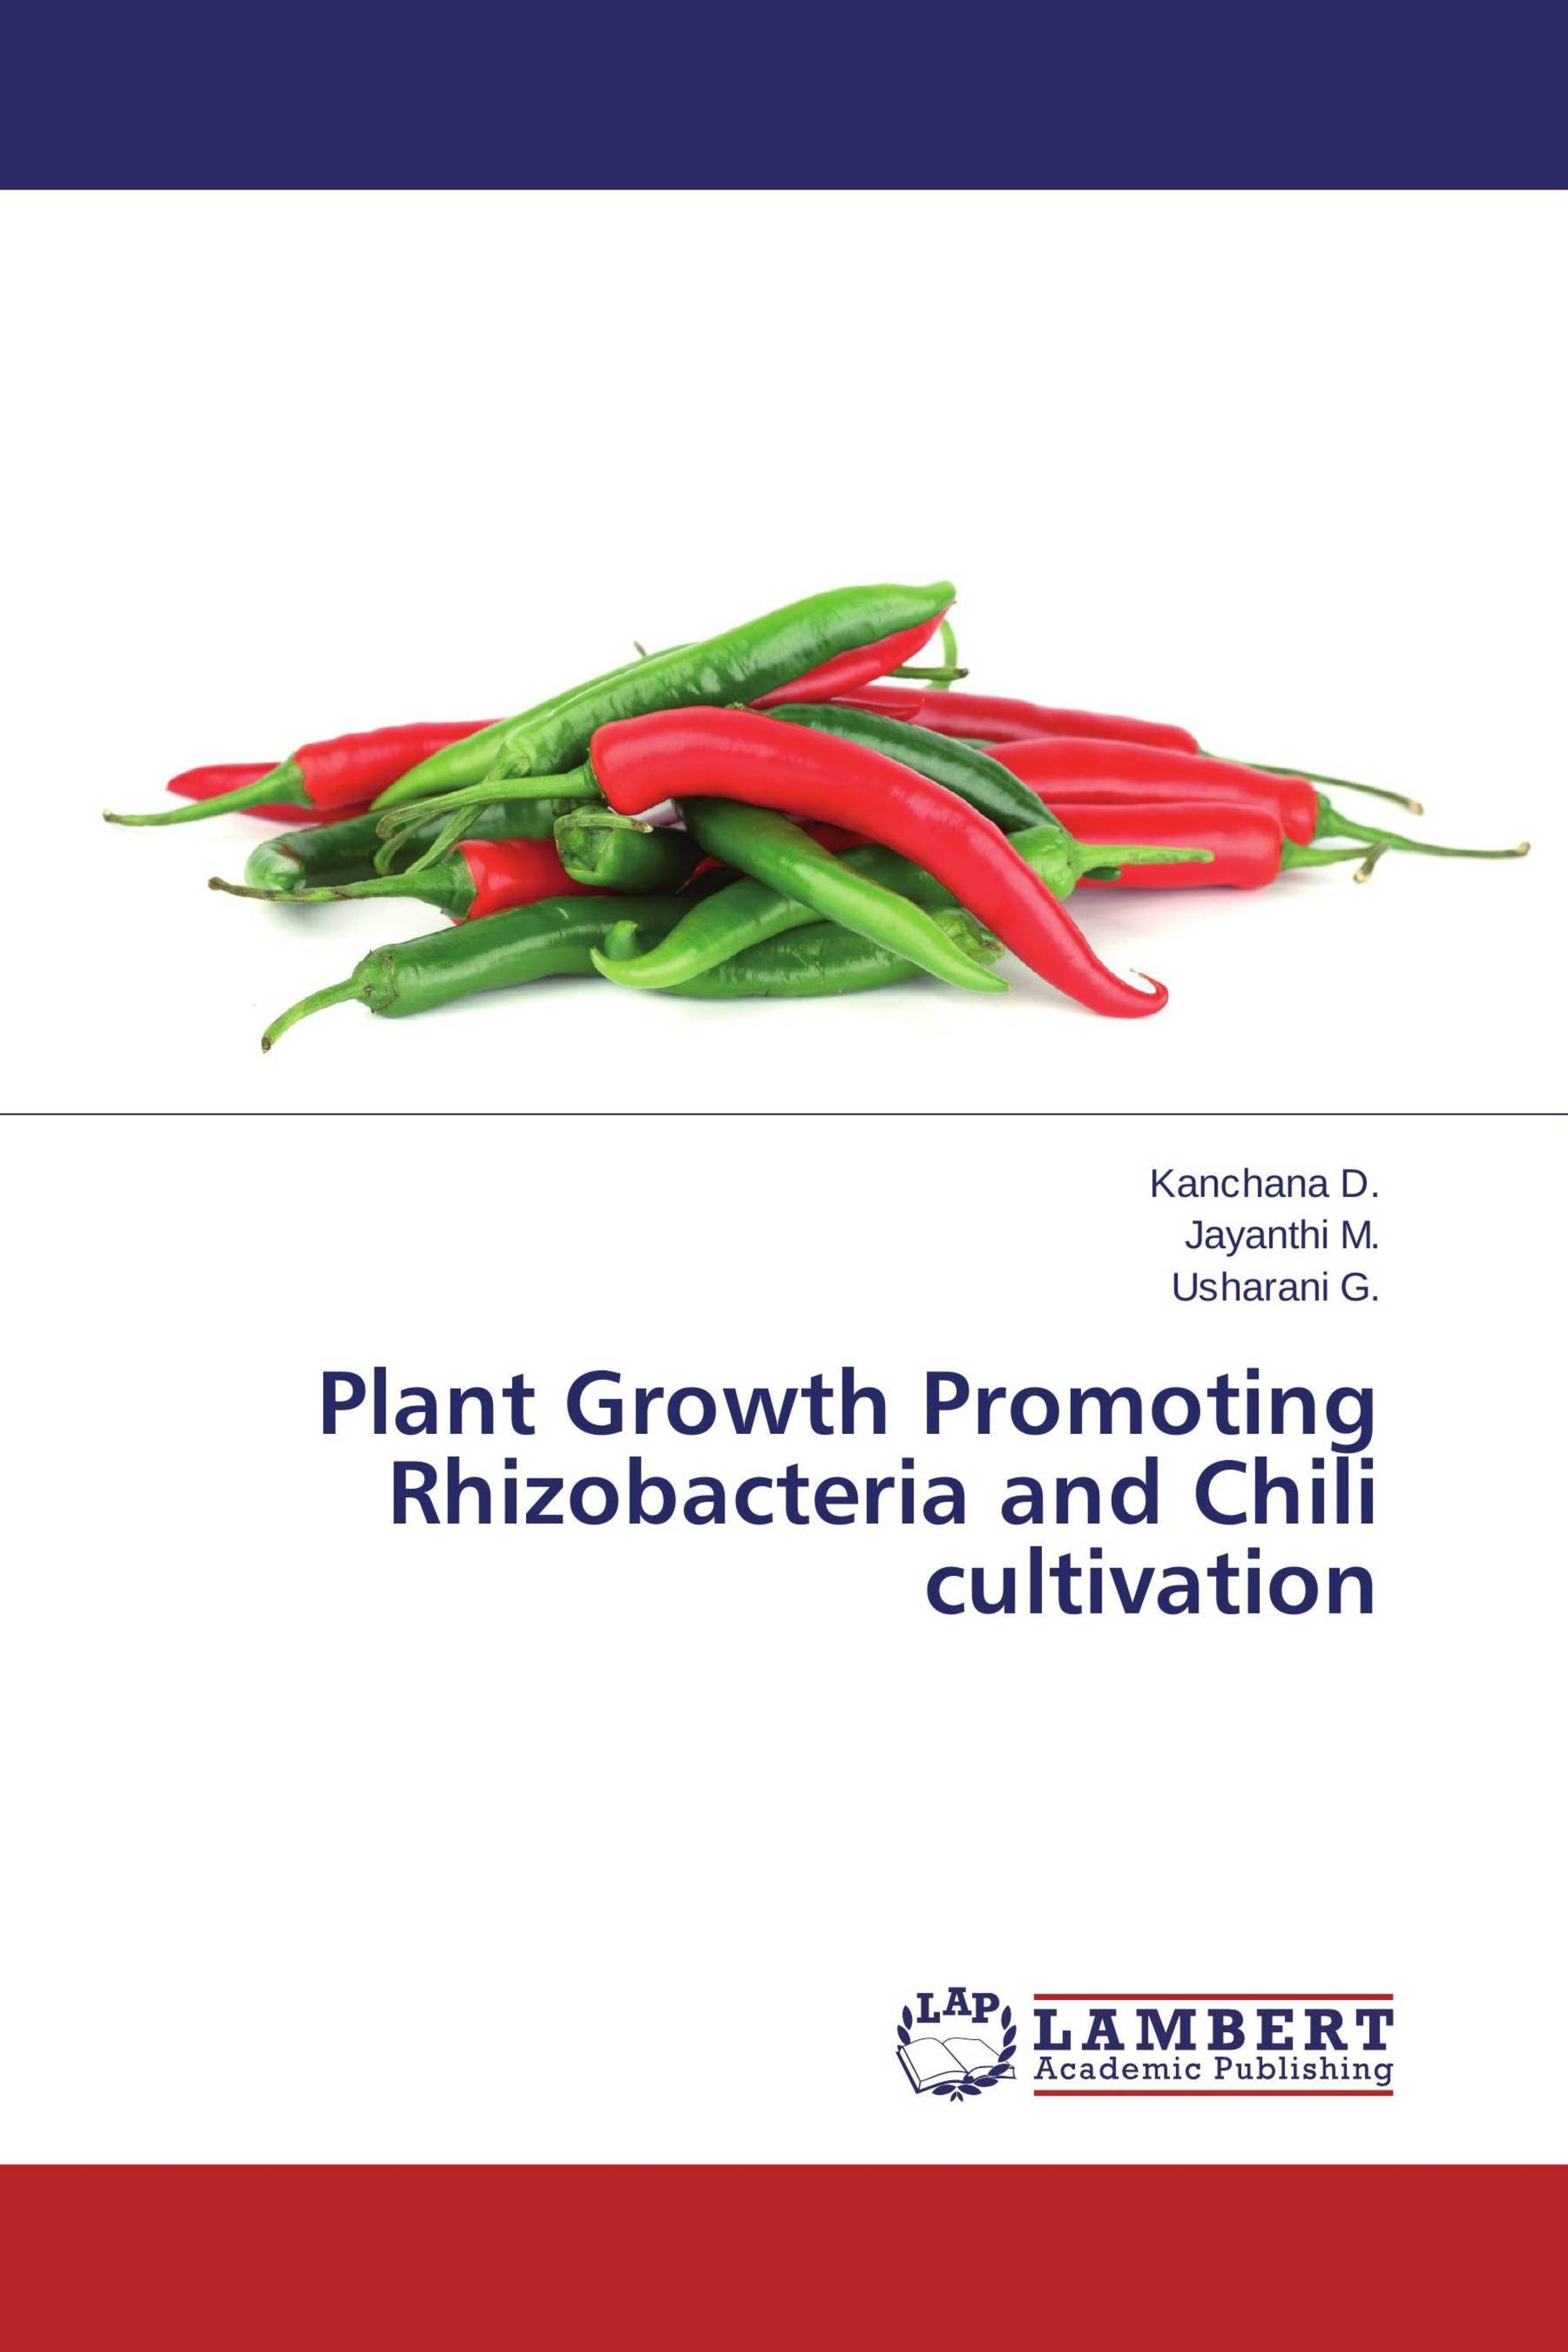 Plant Growth Promoting Rhizobacteria and Chili cultivation